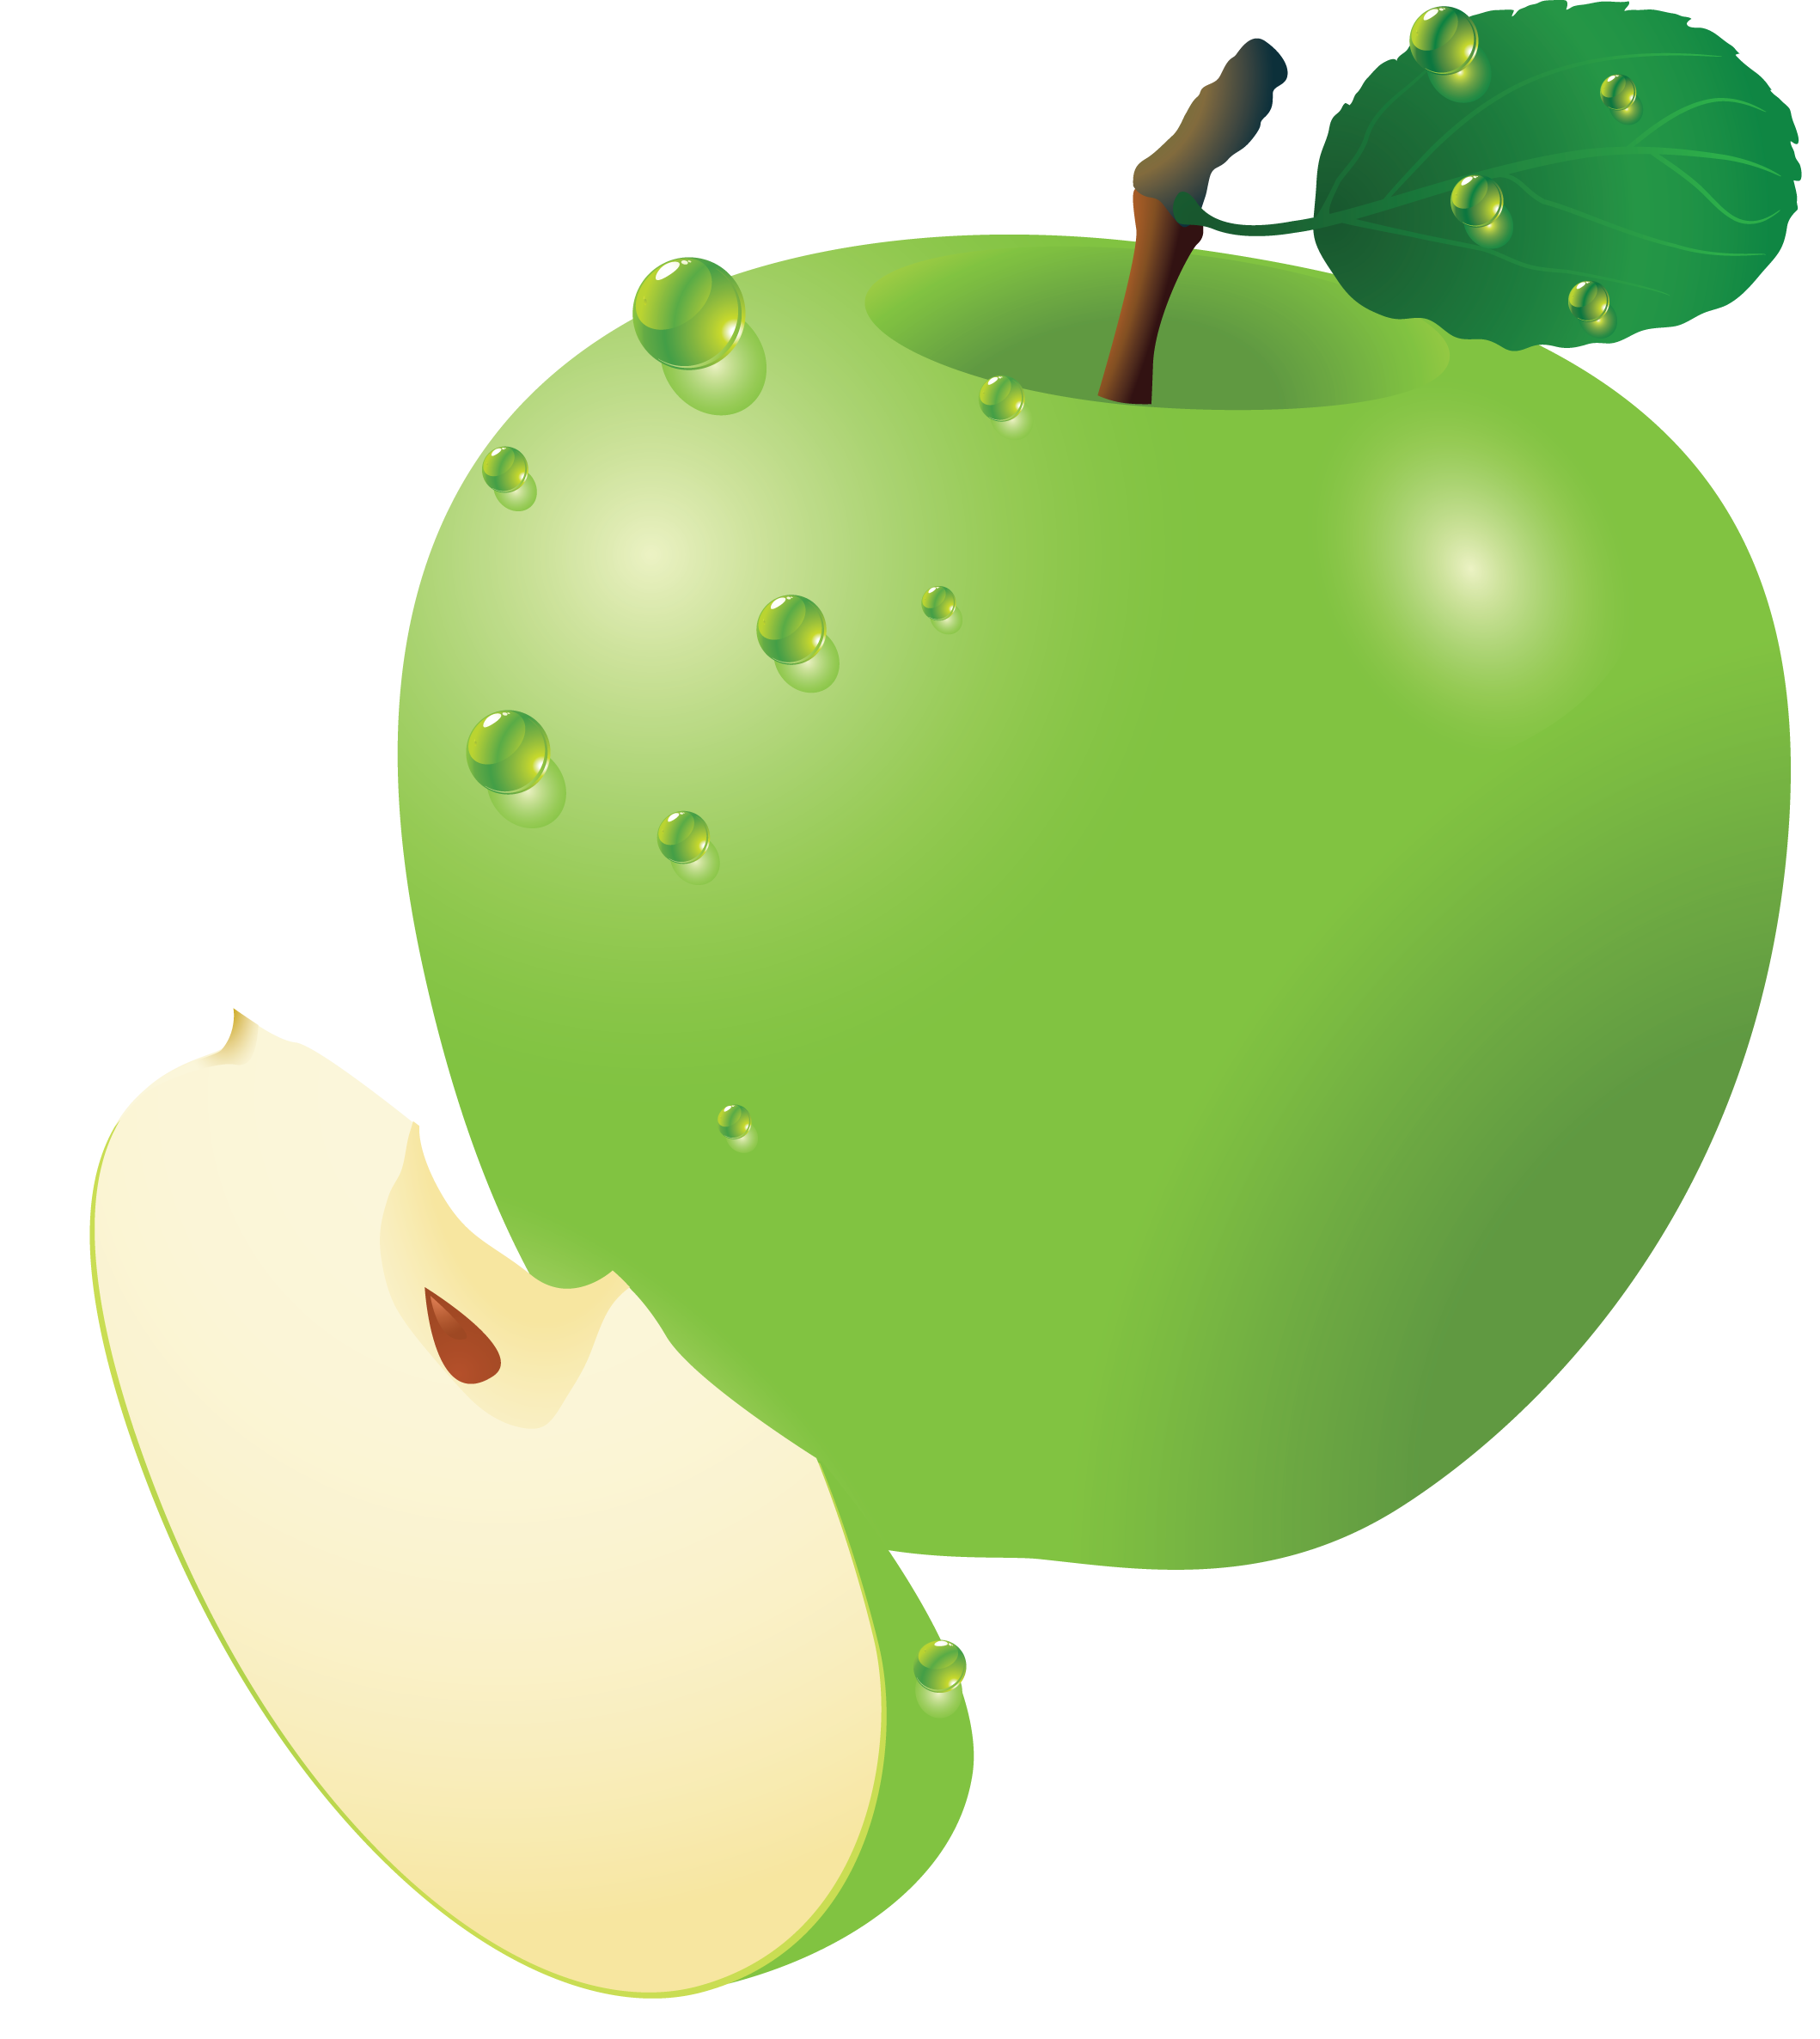 Apple slice clipart vector library Clipart Apple PNG Image - PurePNG | Free transparent CC0 PNG Image ... vector library